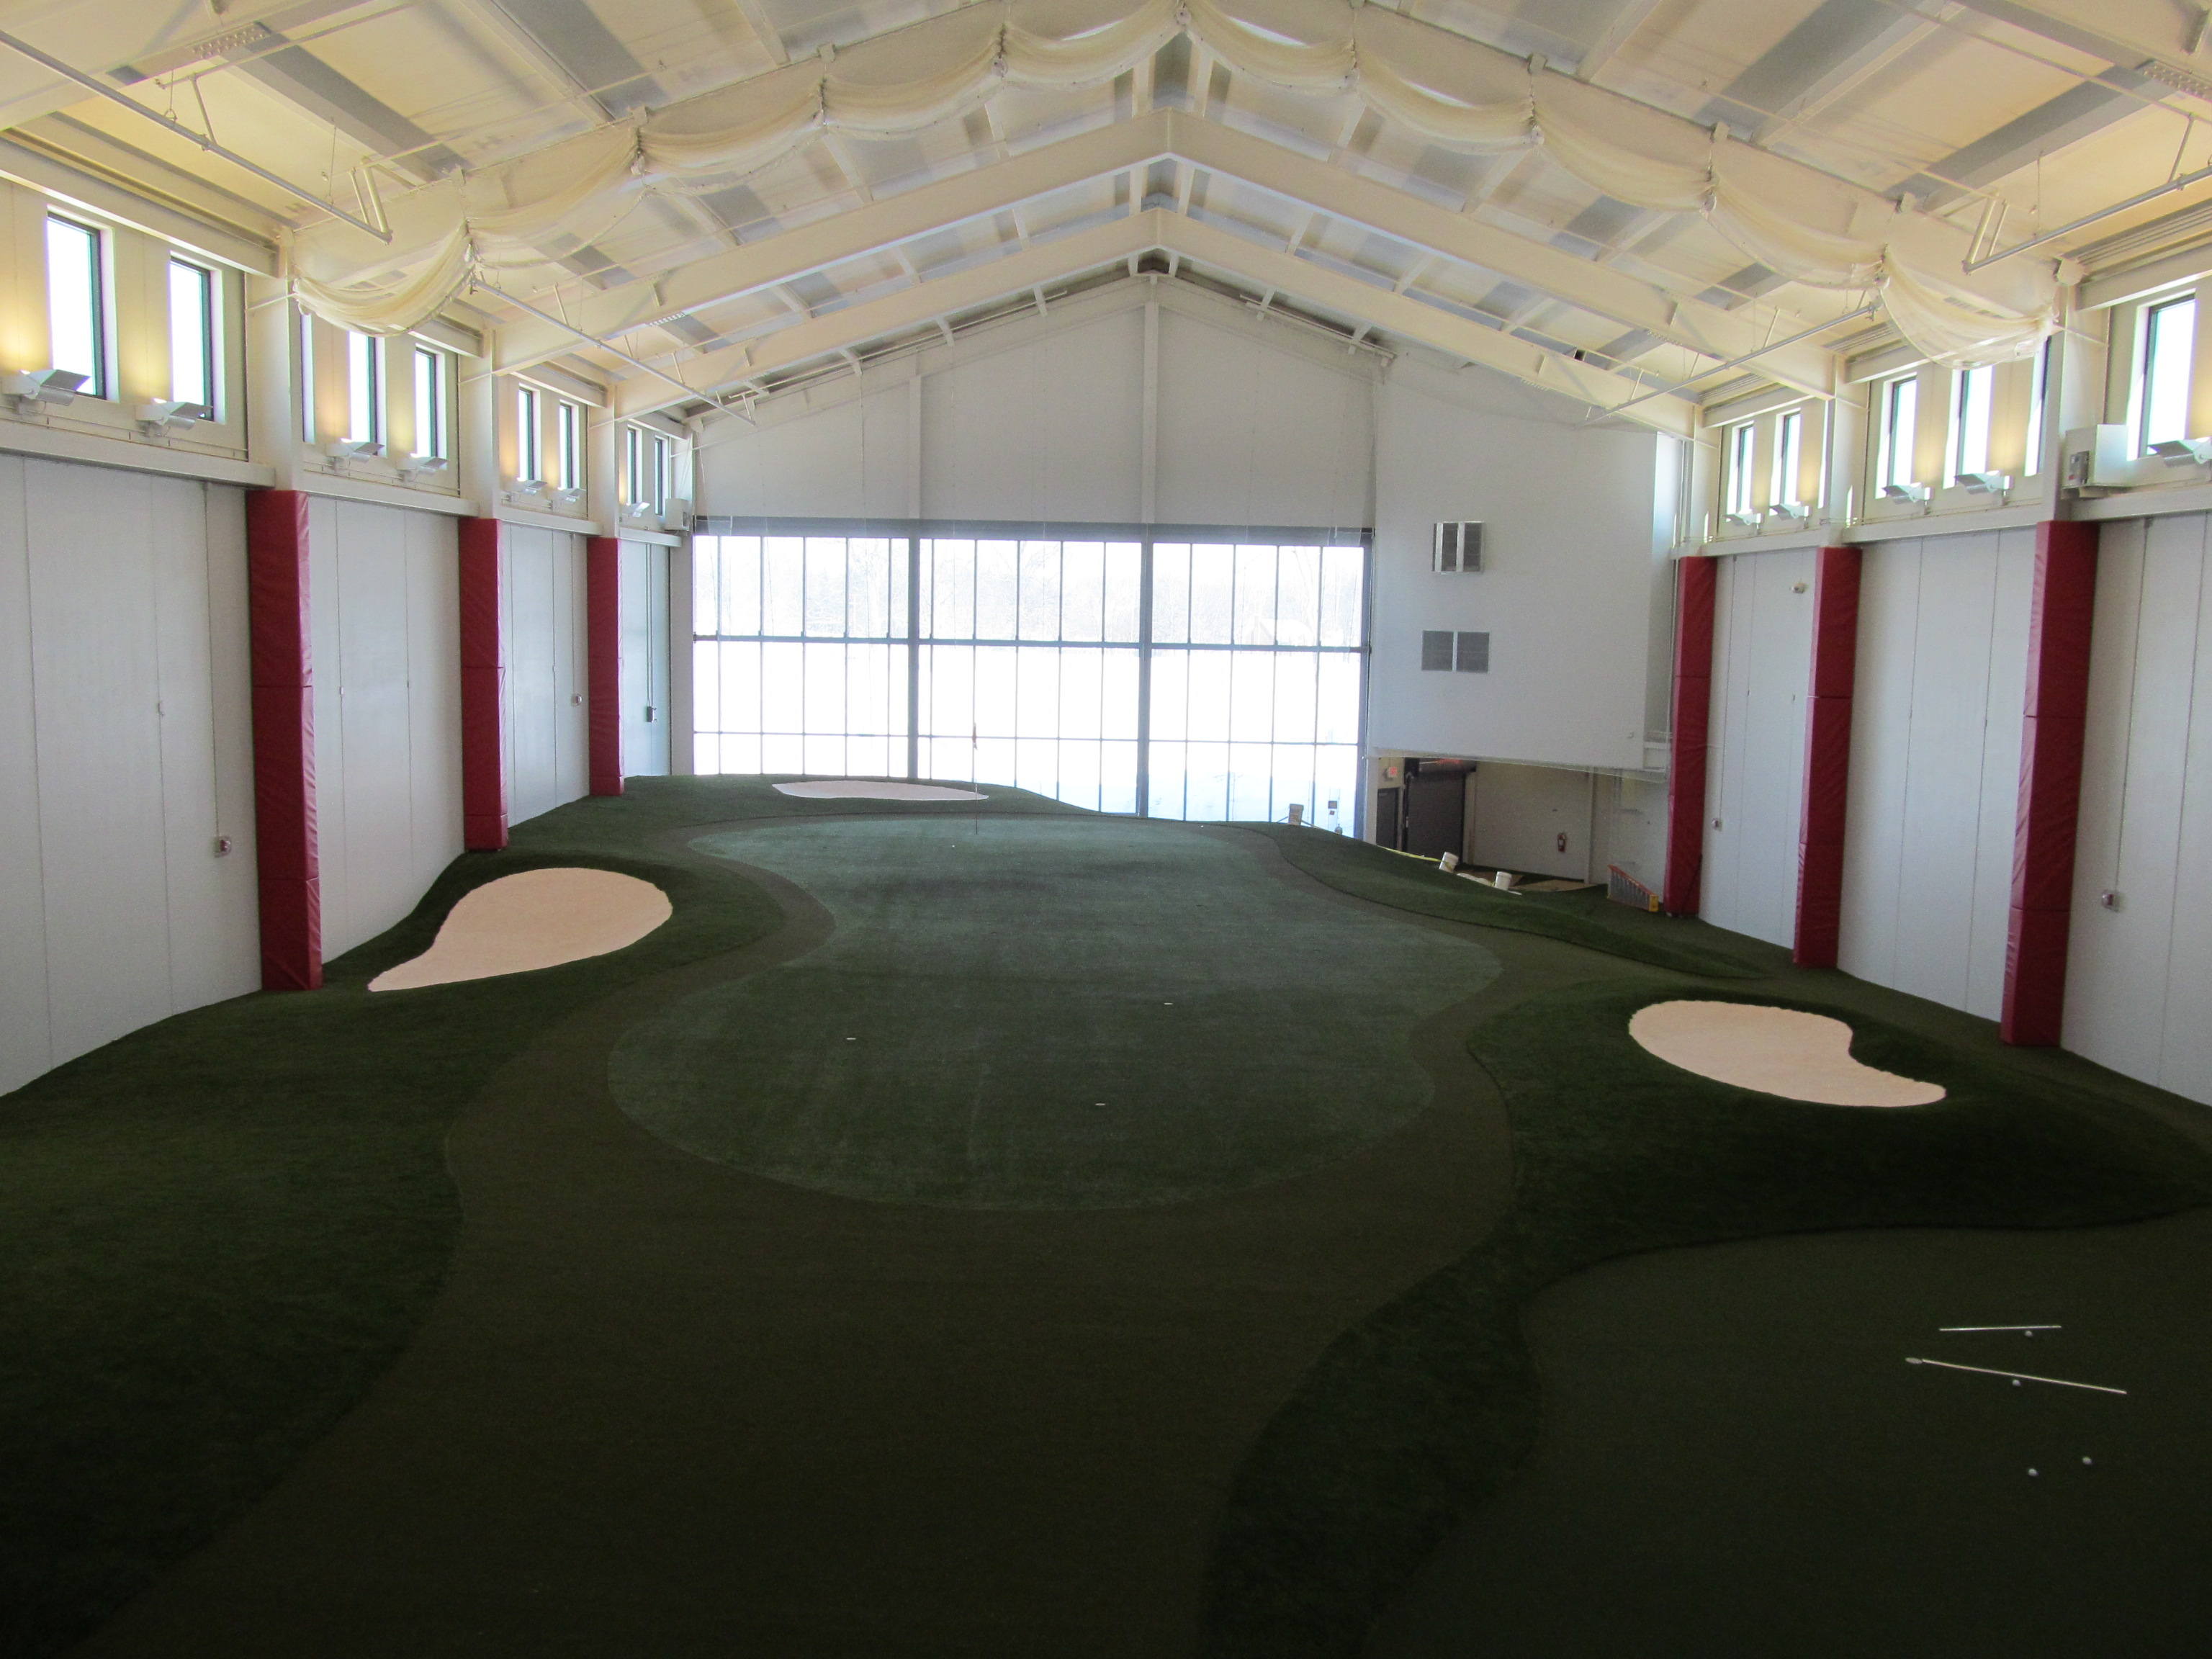 Ohio State's indoor practice facility features a 50-yard hole with three bunkers.